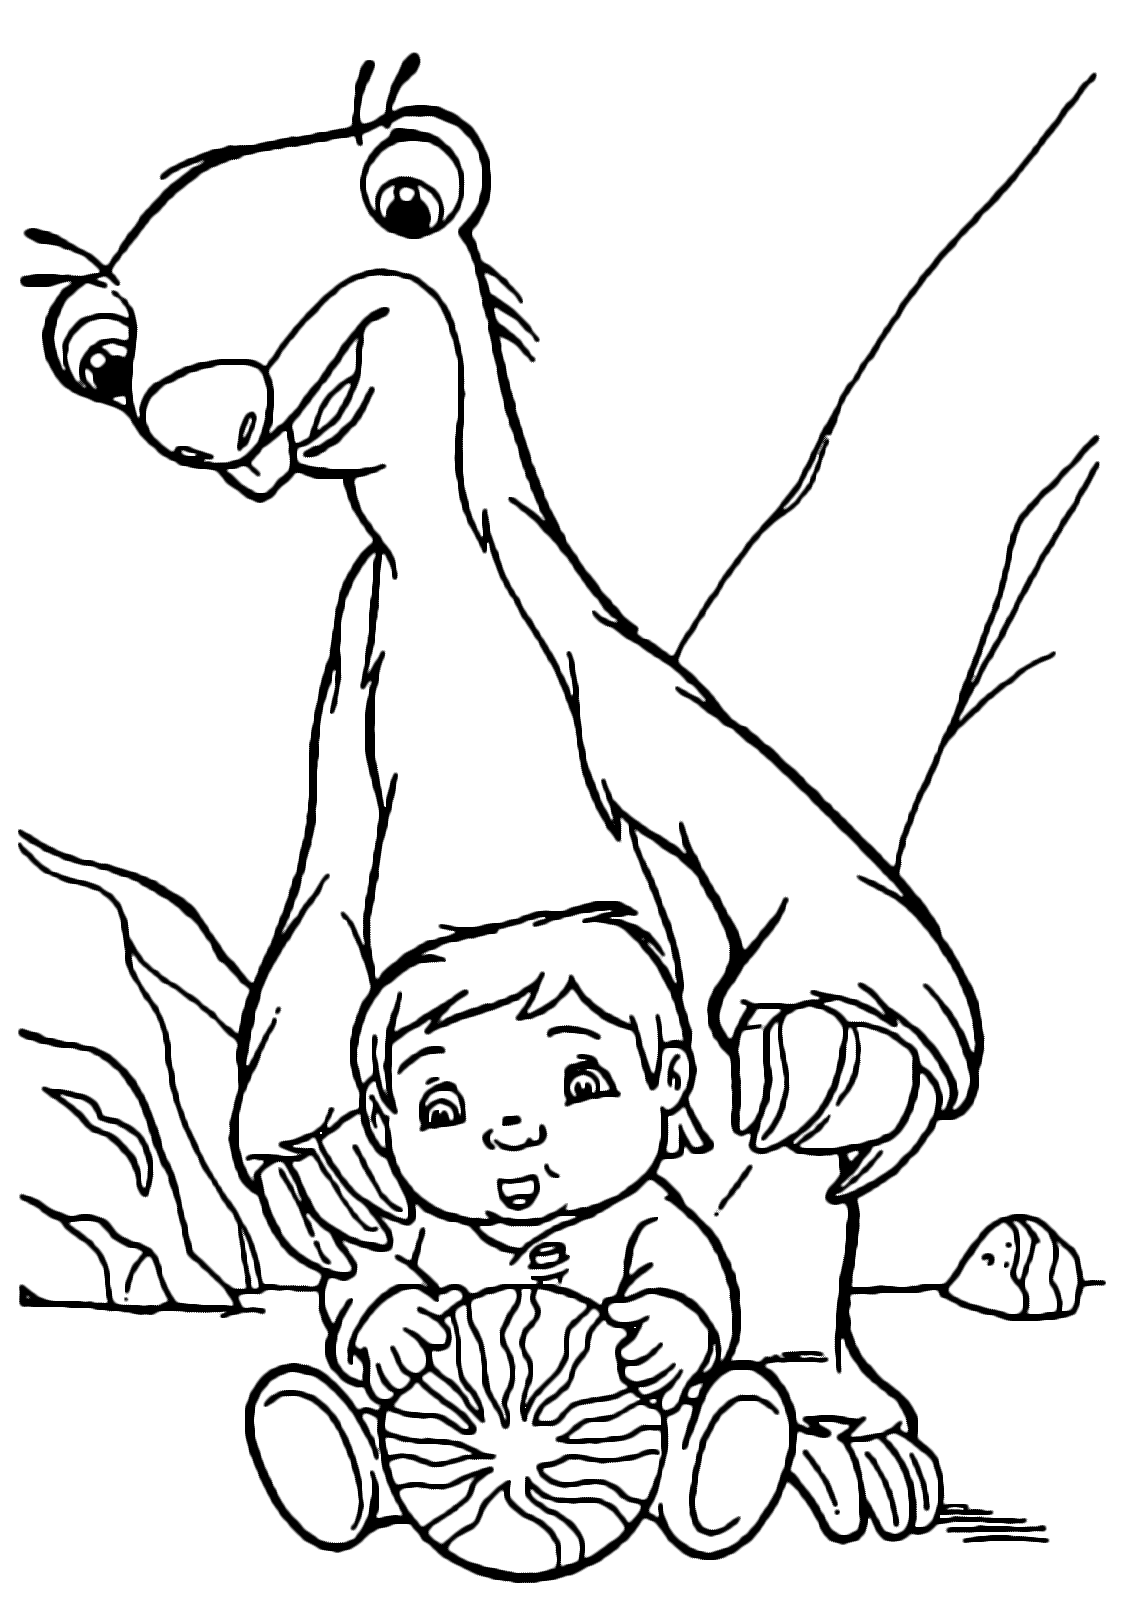 coloring book for age 2 ice age sid looks affectionately at the baby for coloring 2 age book